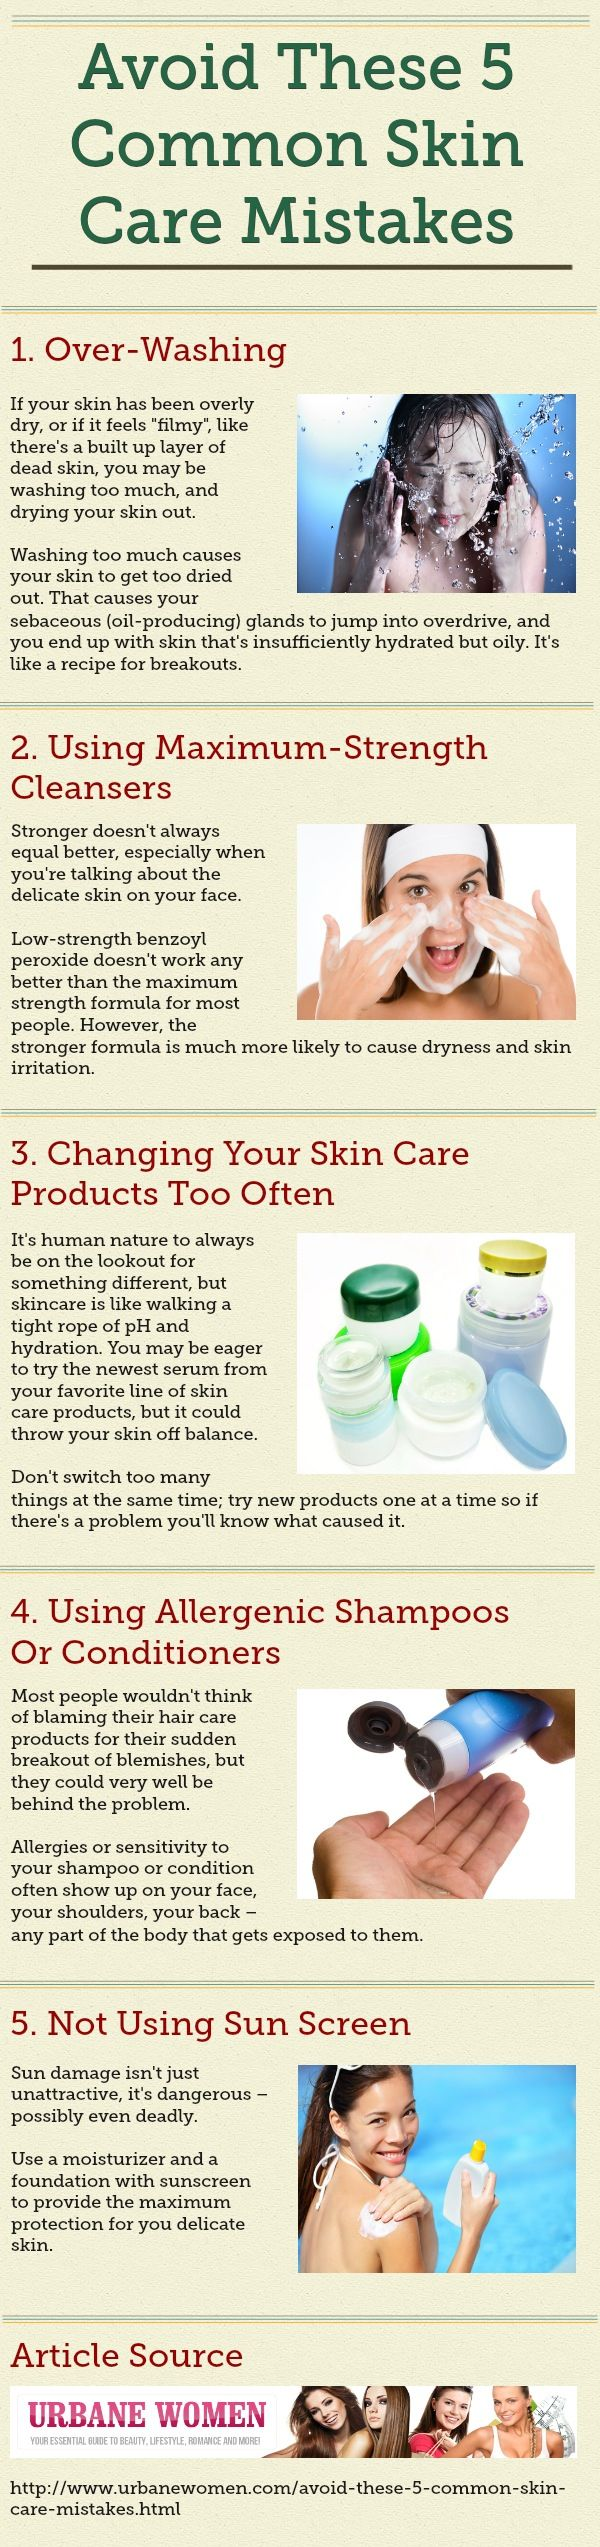 Skincare Mistakes-- As soon as I stopped using a harsh cleanser from Philosophy, and stuck to a routine of just using a gentle daily cleanser, I saw a big improvement in the number of breakouts I got, (decreasing). Worth a try.